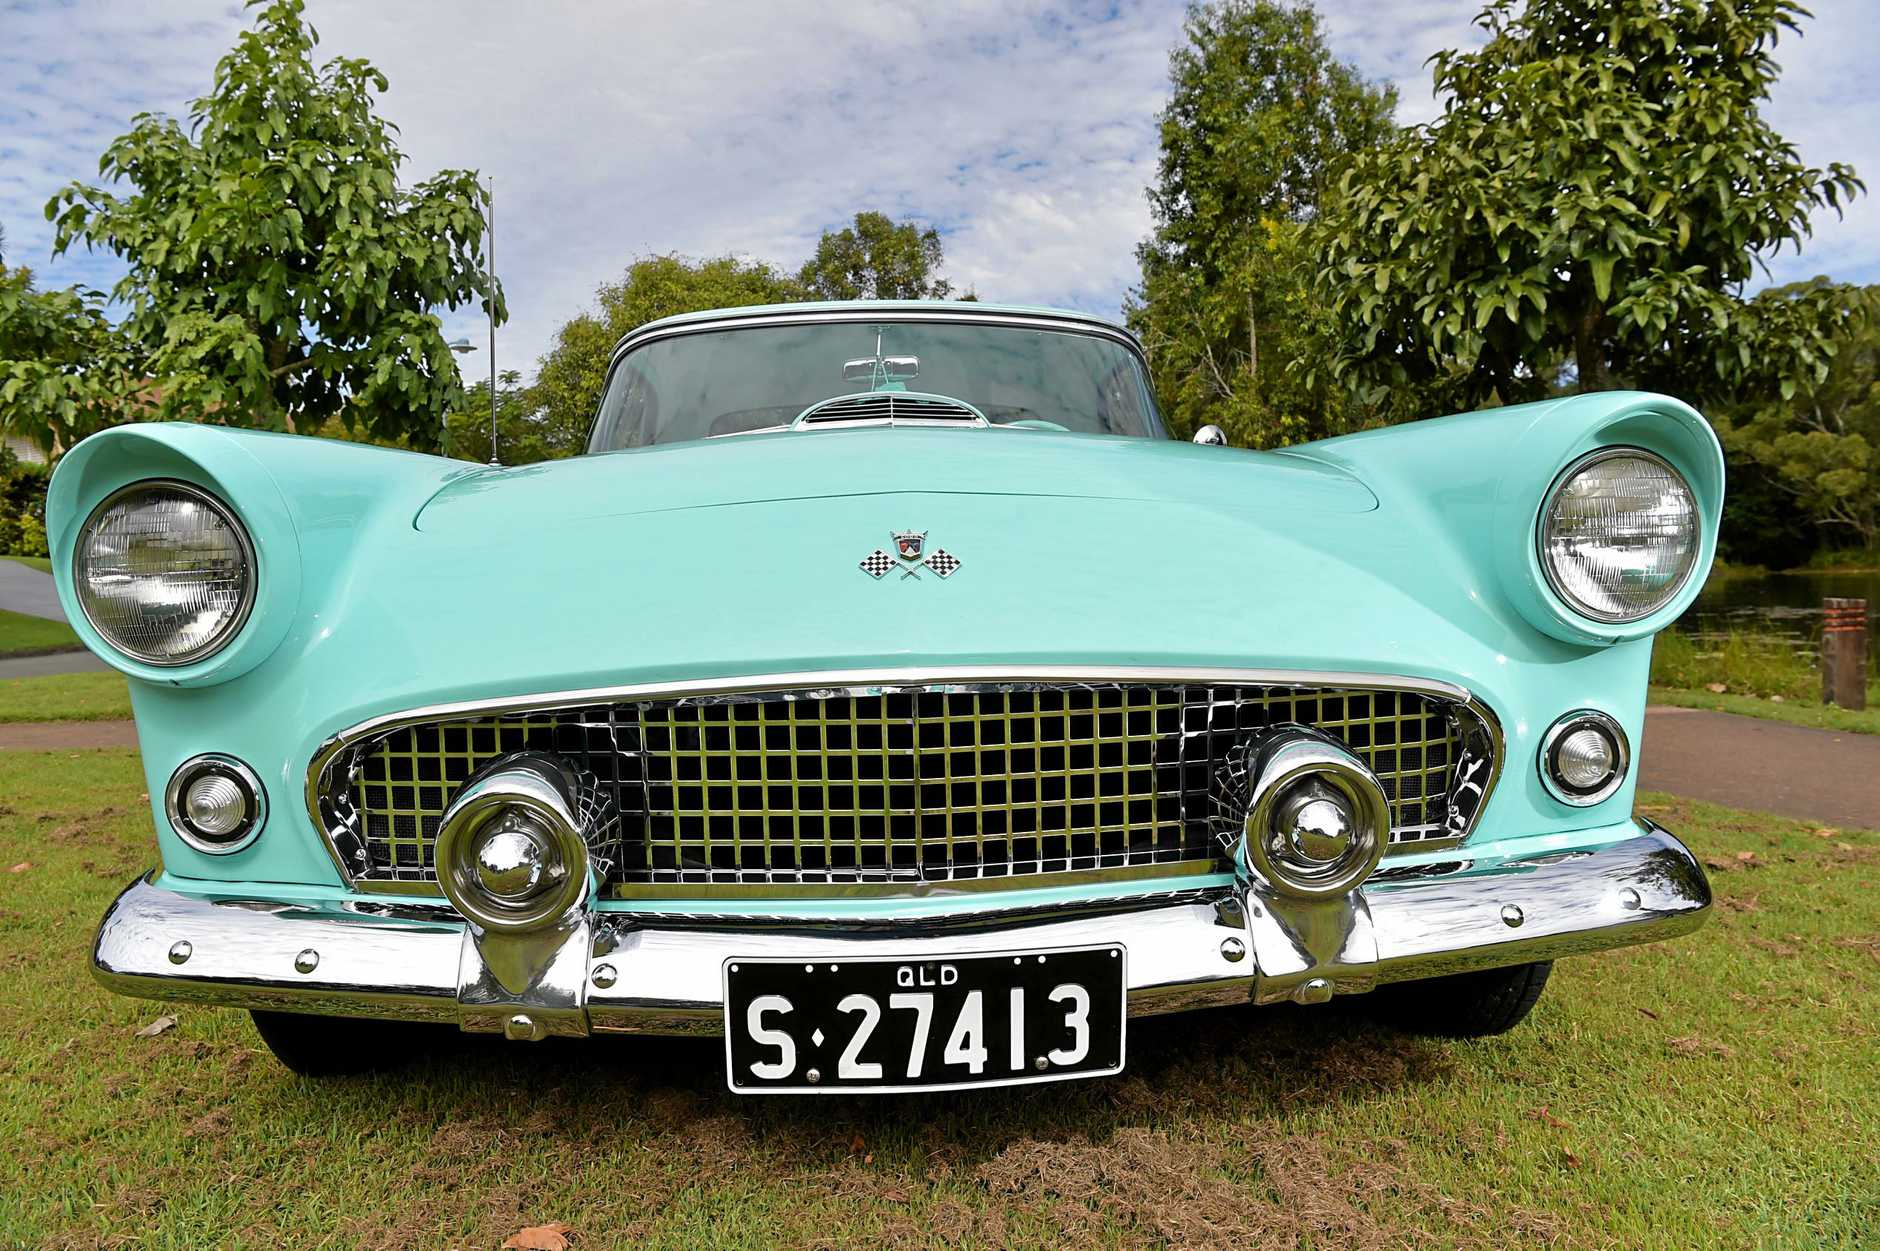 1955 Ford Thunderbird owned by Tony Bullock